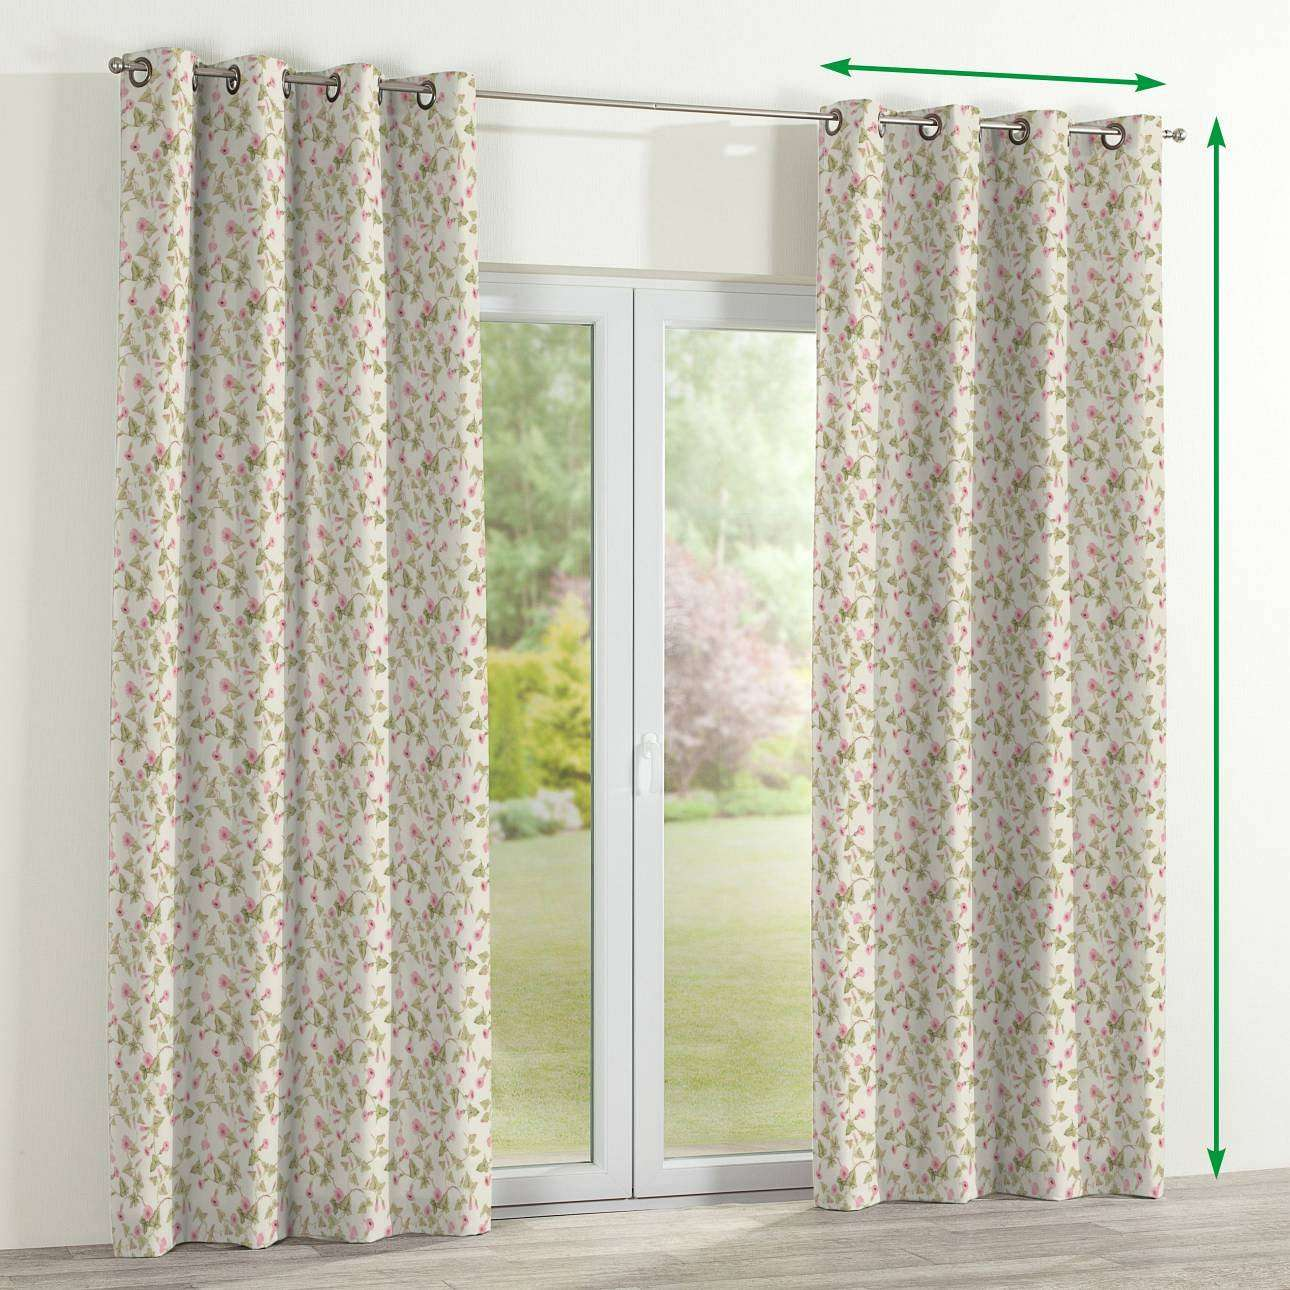 Eyelet lined curtains in collection Mirella, fabric: 140-41